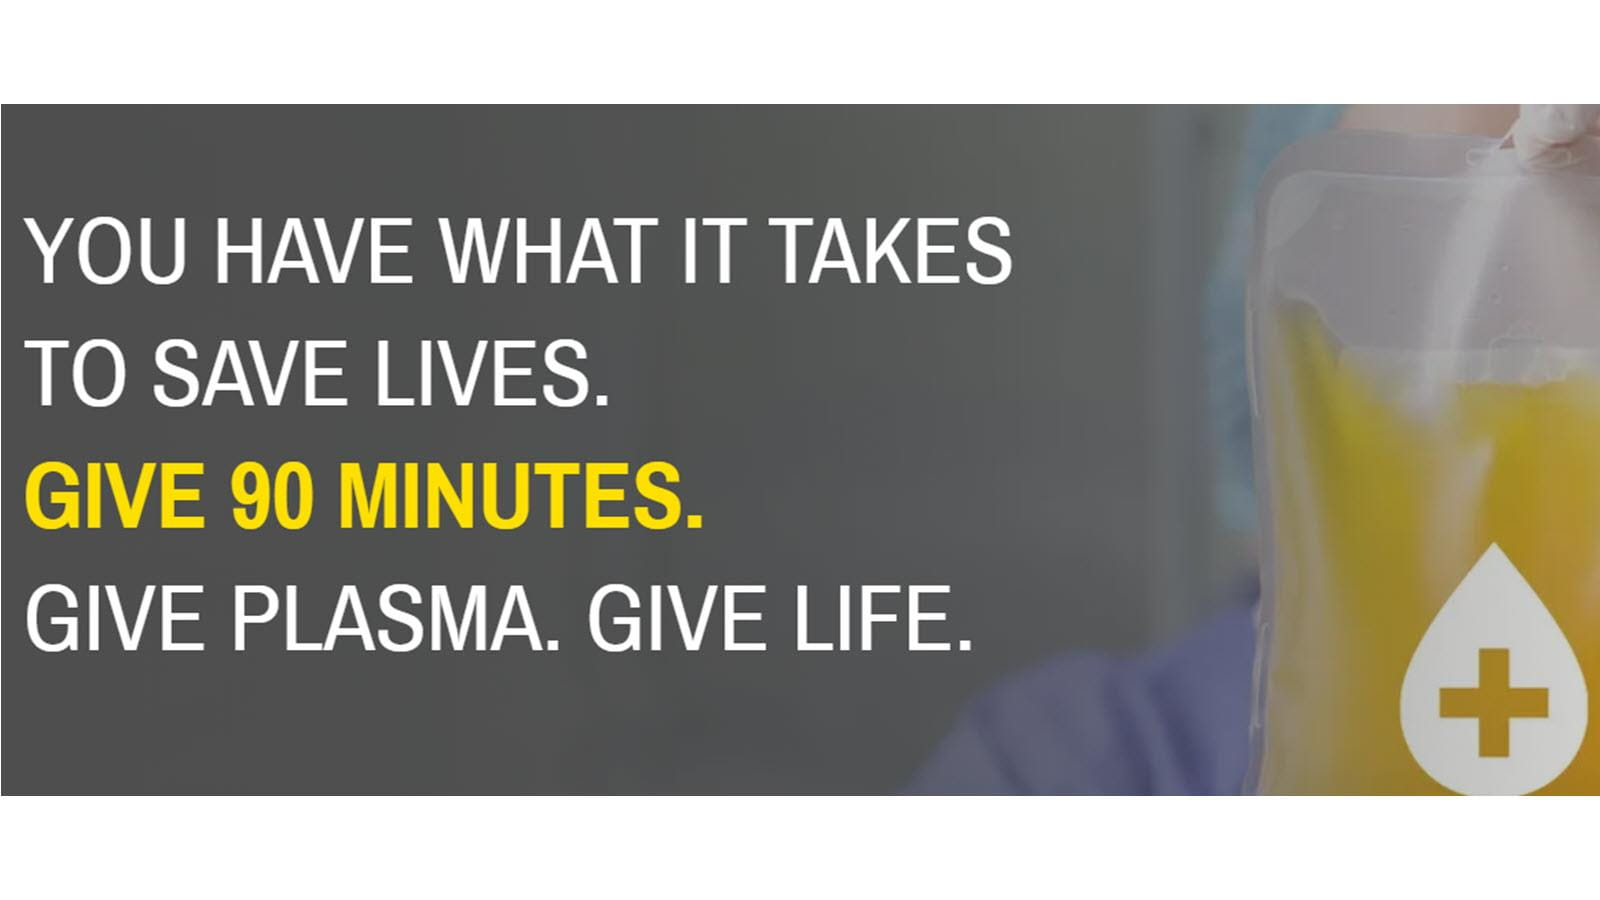 You have what it takes to save lives. Give 90 minutes. Give plasma. Give life.